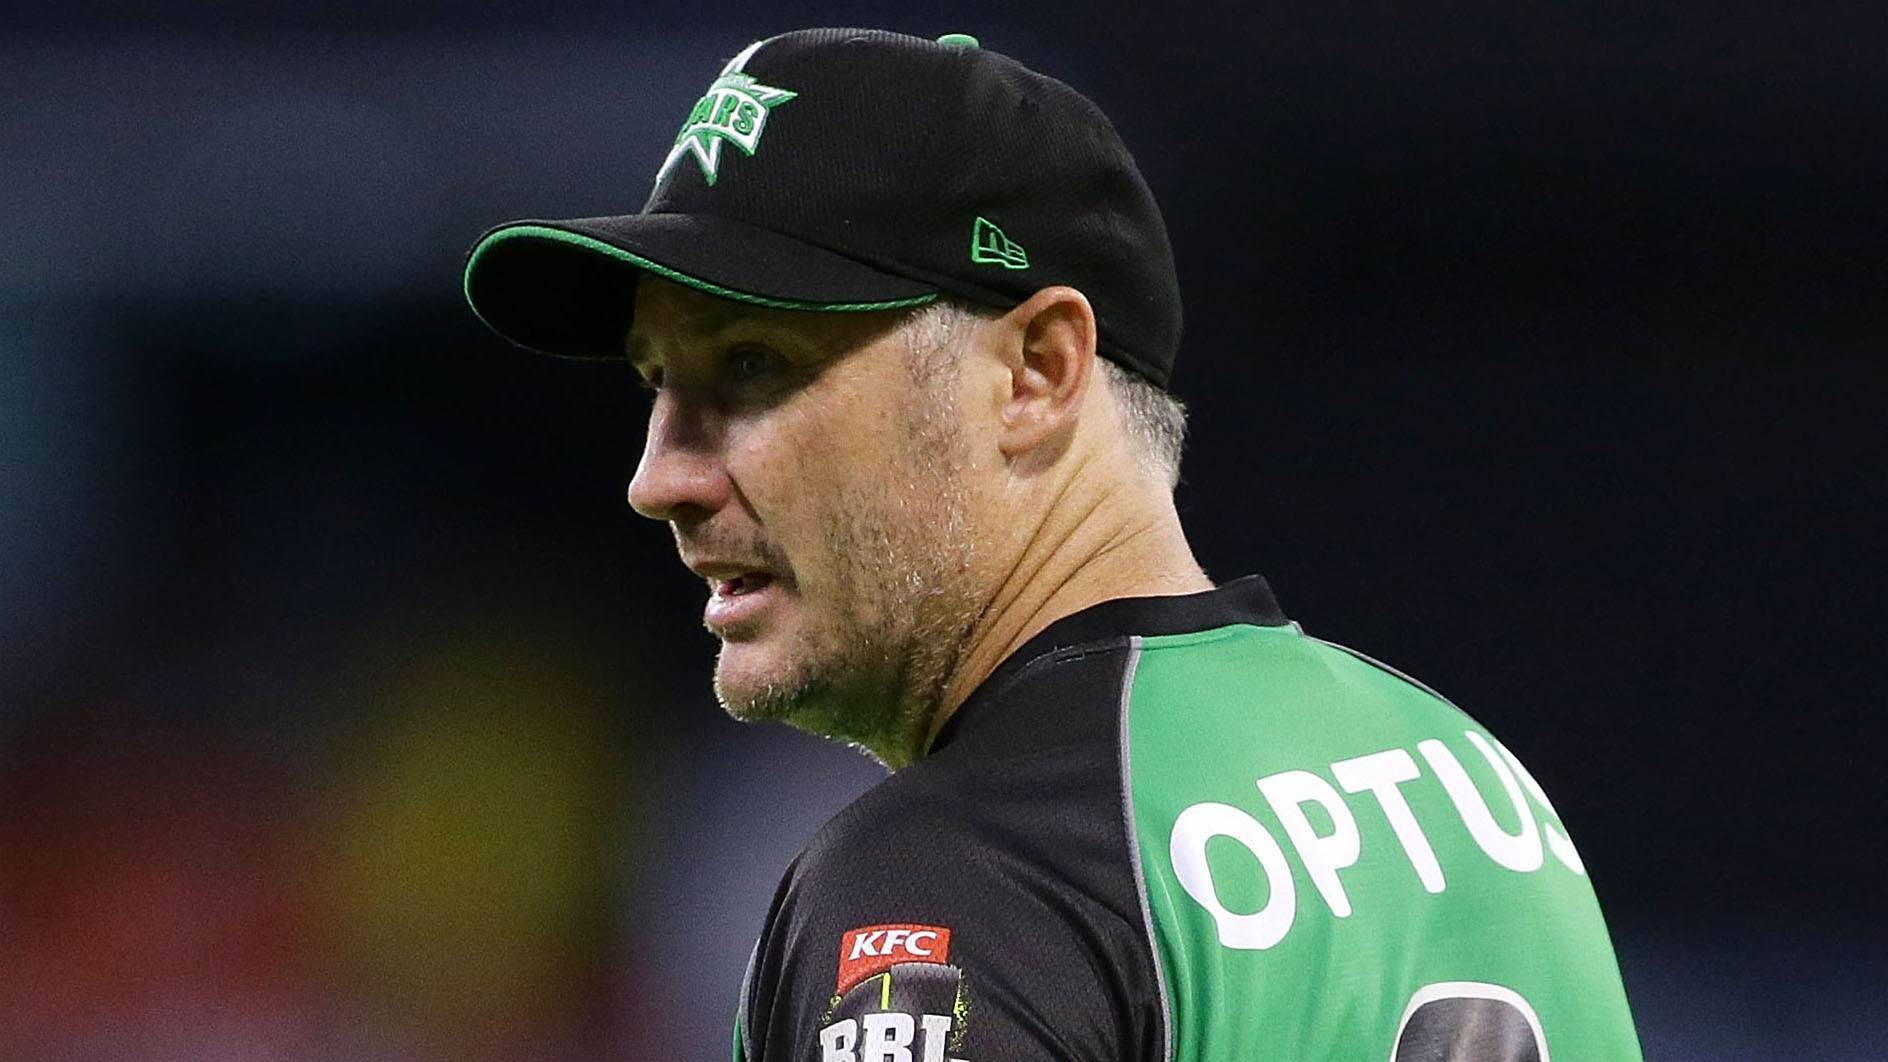 Hussey's scathing dig at Lehmann